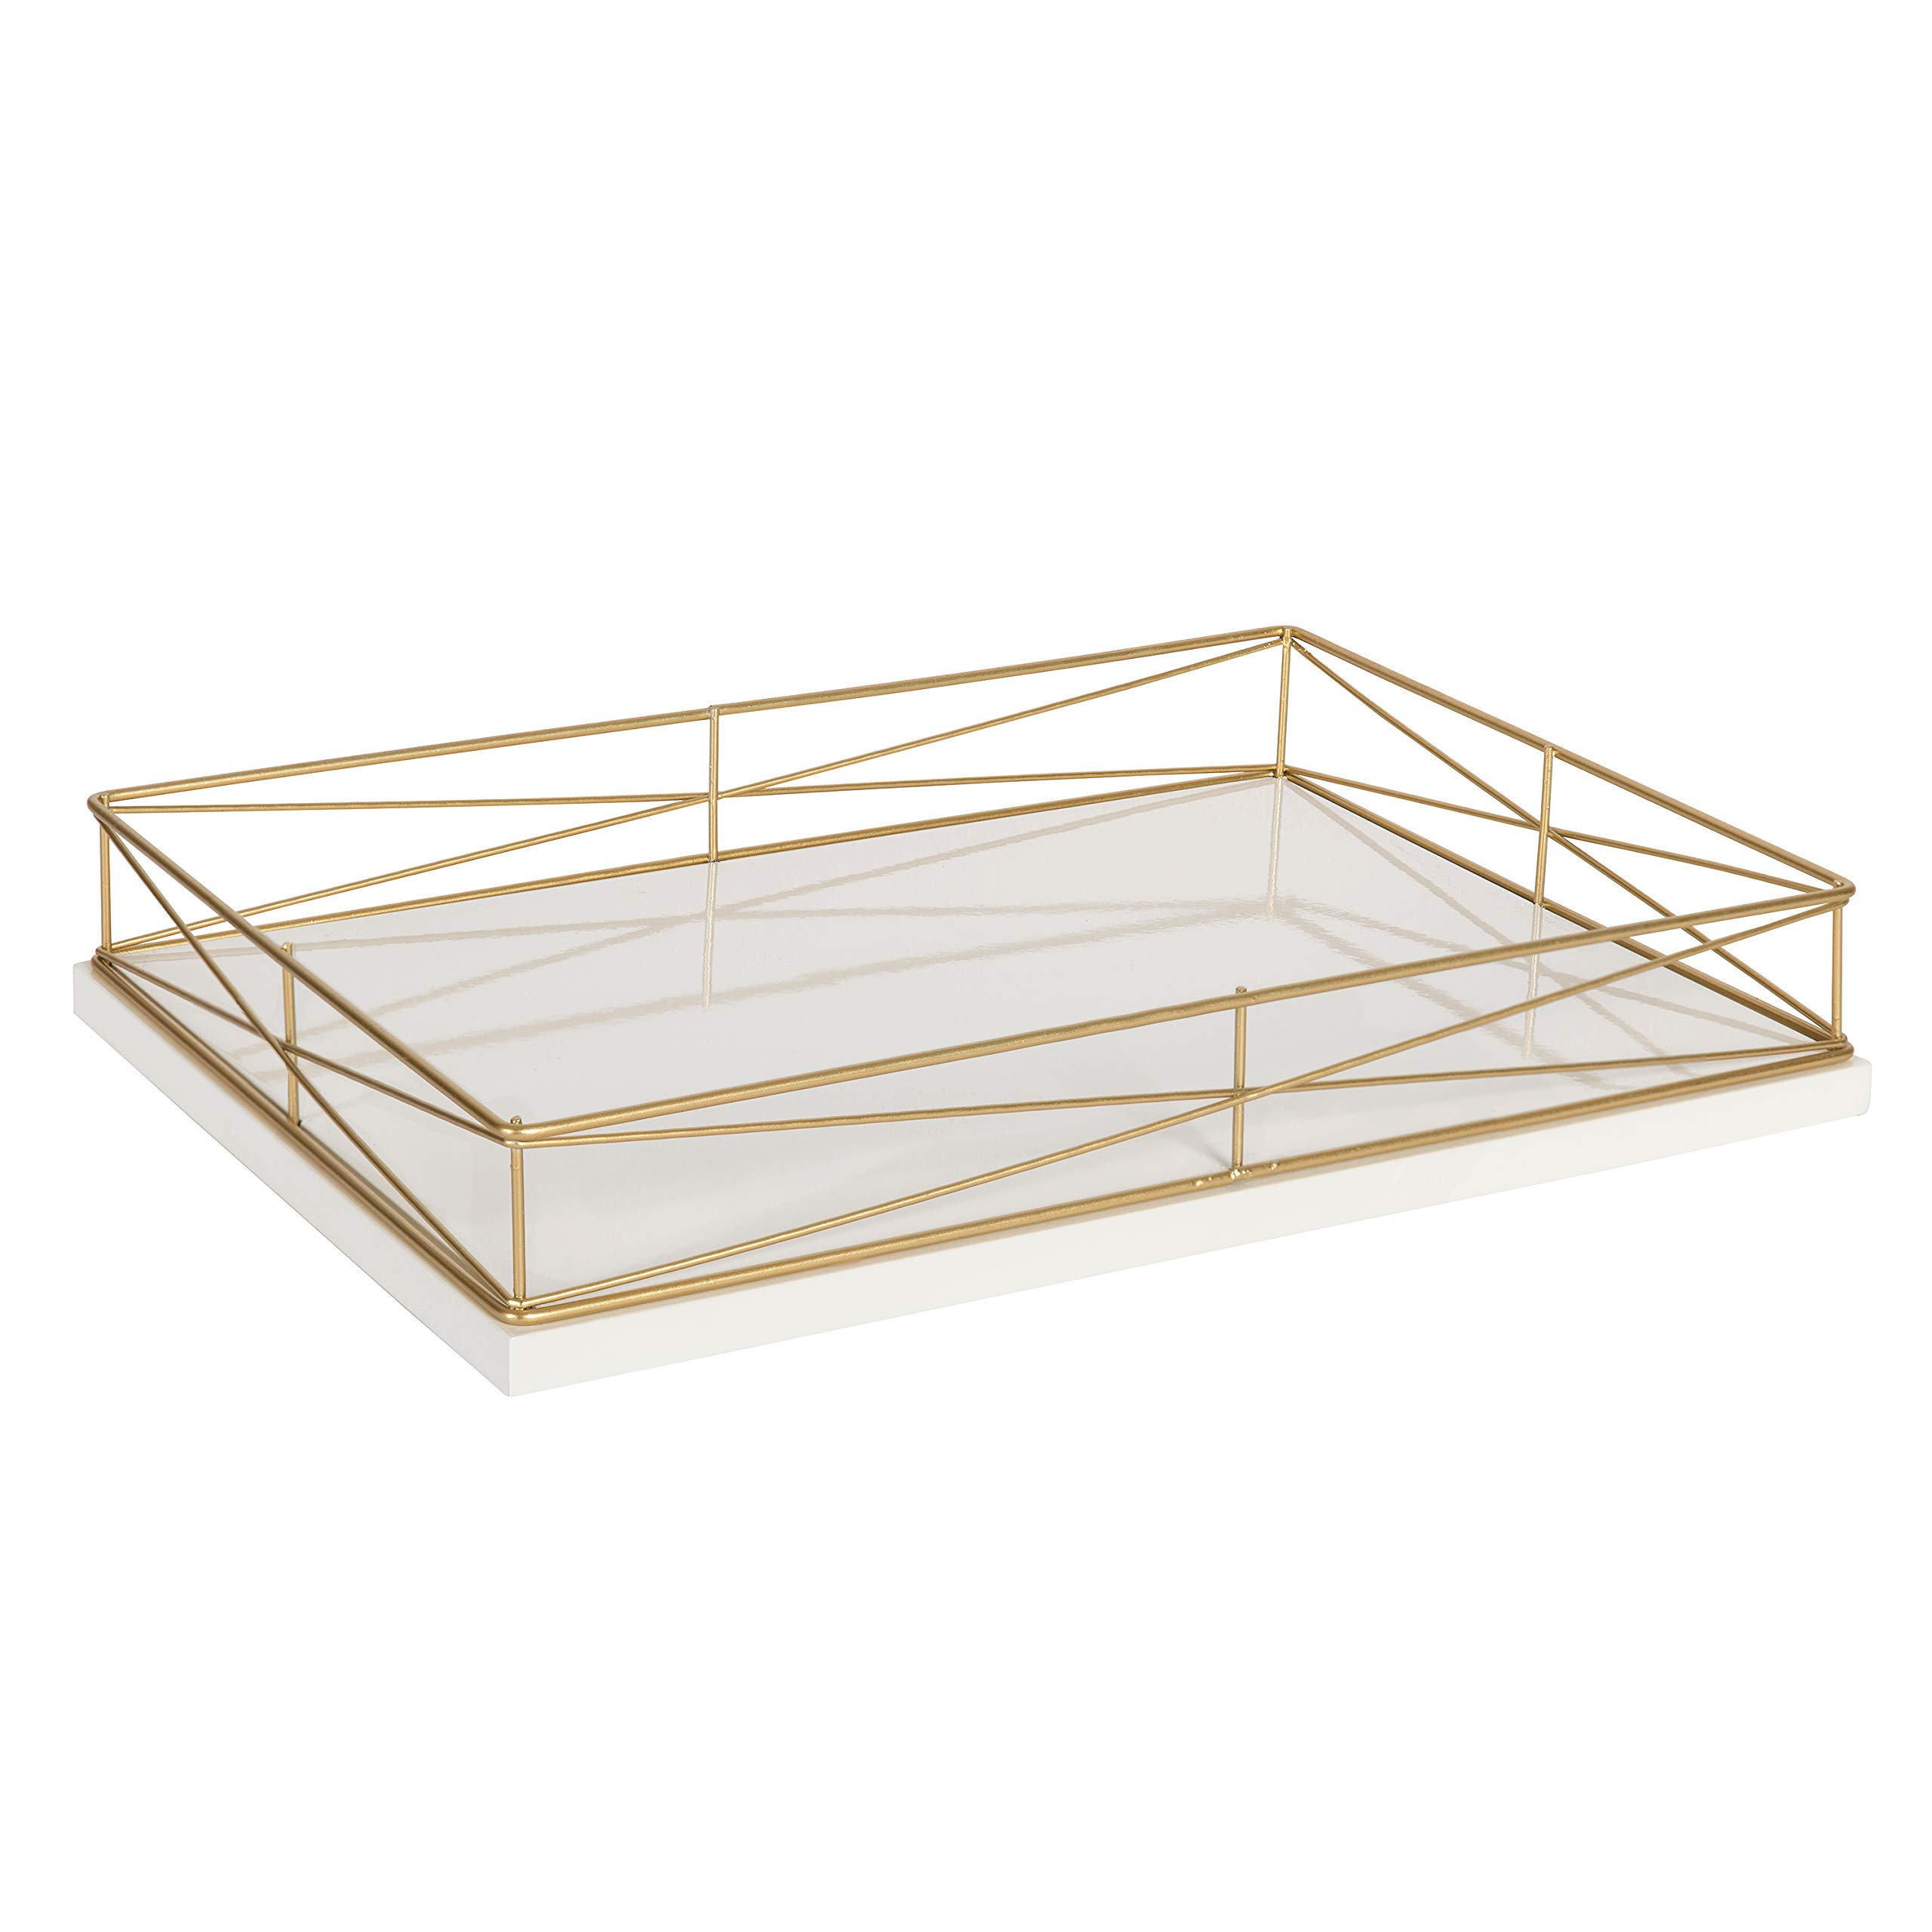 Kate and Laurel Mendel Rectangle Tray with Decorative Metal Rim, 16.5 x 12, White and Gold